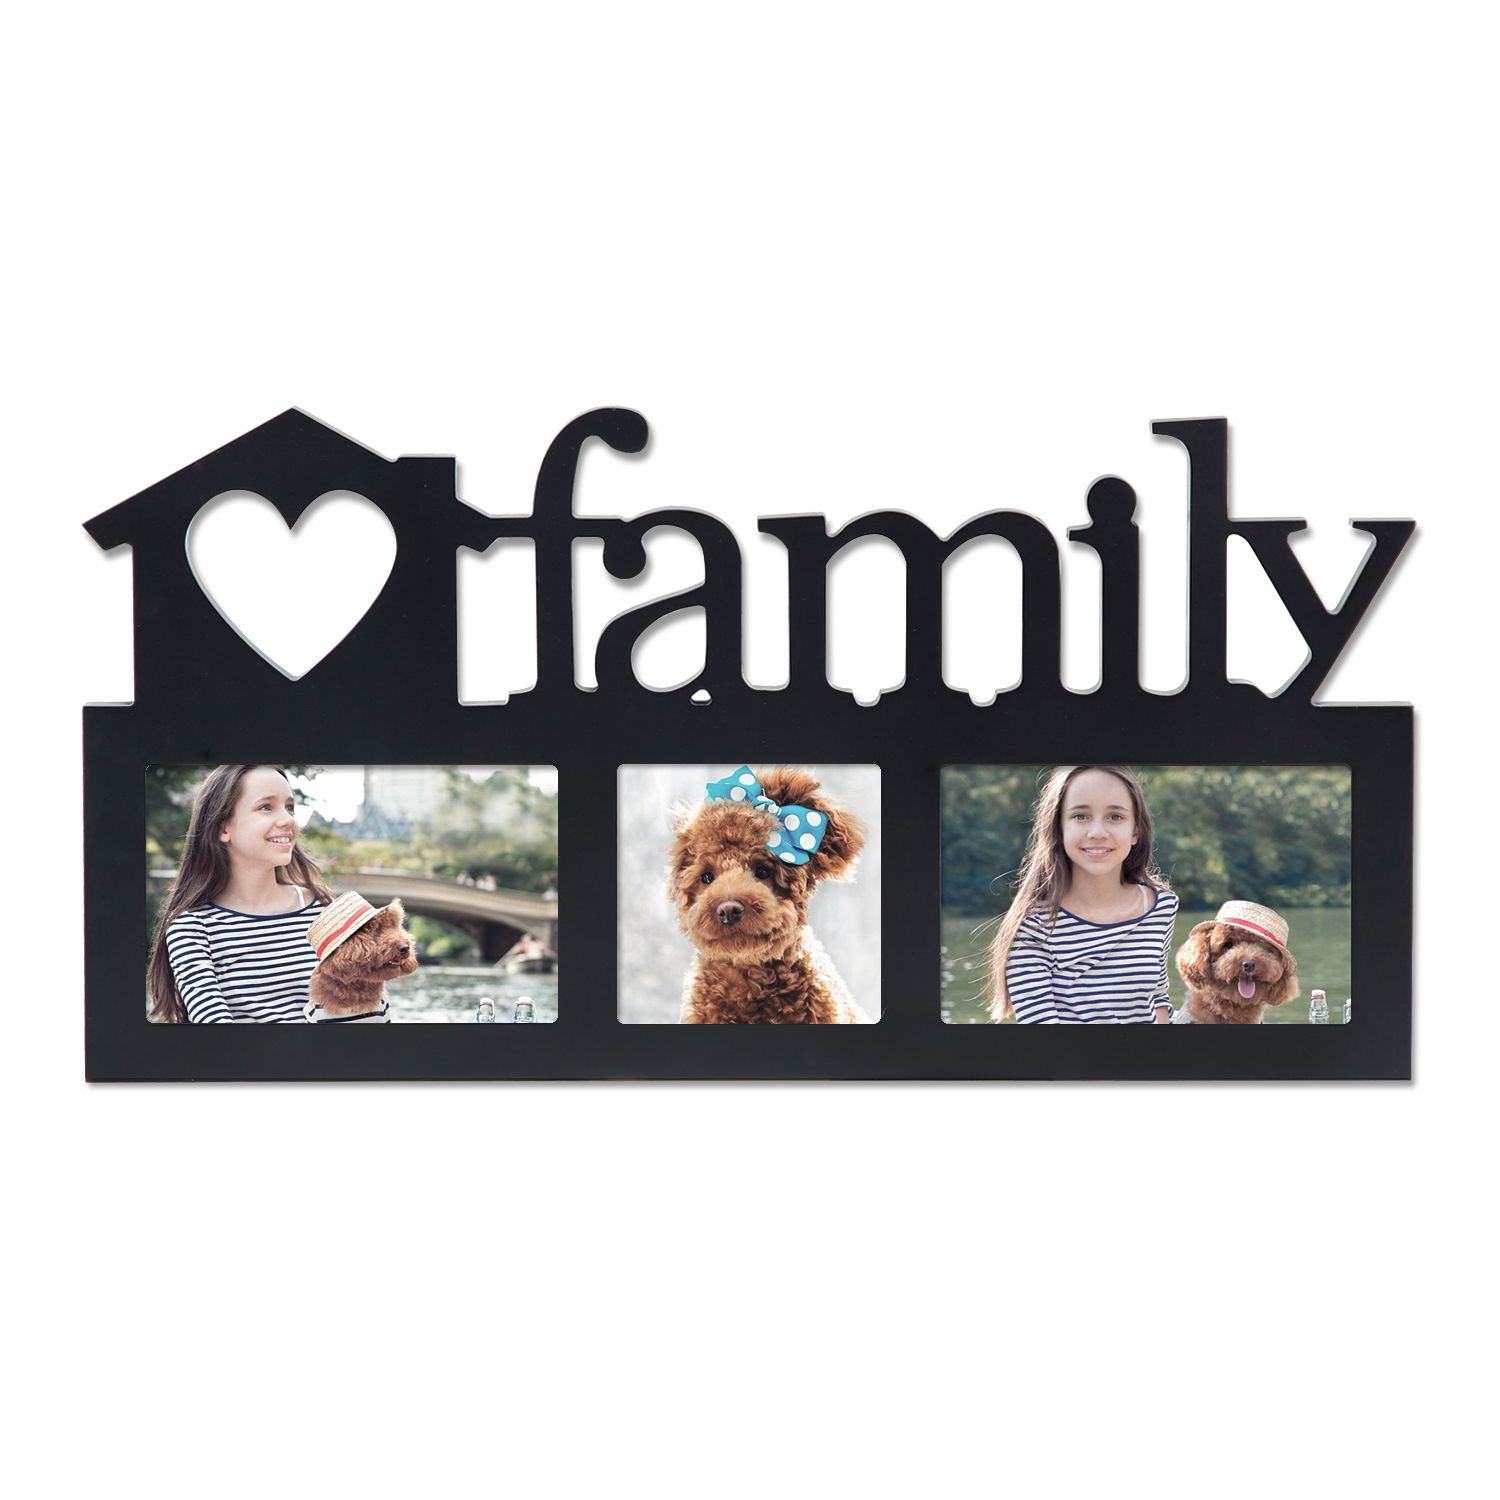 Adeco Decorative Black Wood Family Wall Hanging Picture Photo Frame 3 Openings 4x6 4x4